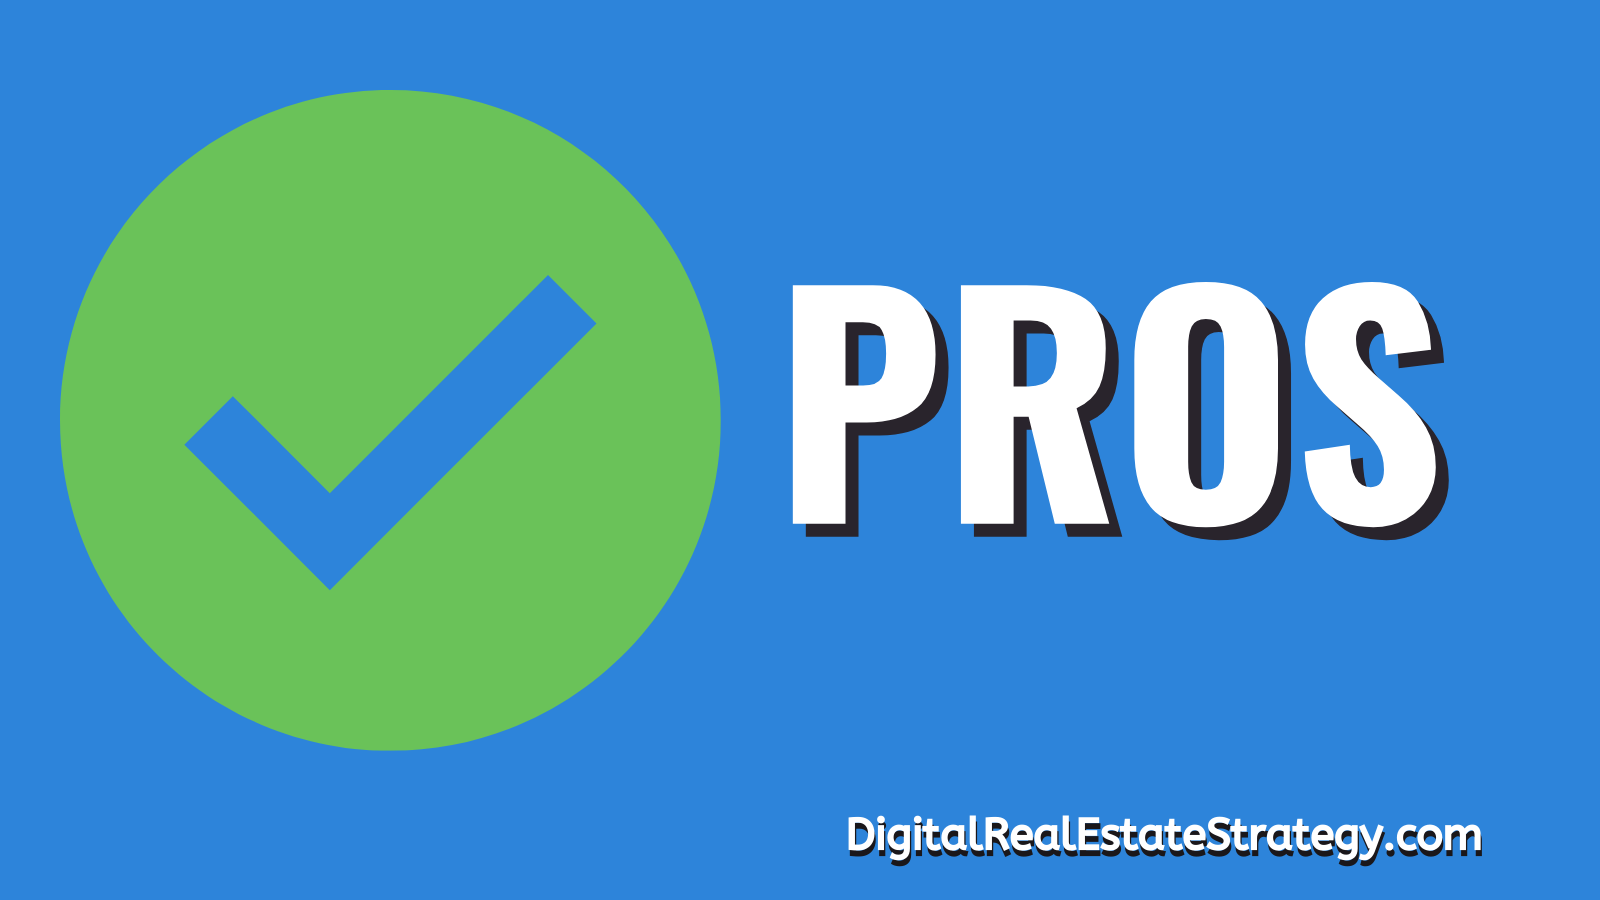 Investor Carrot Review - Pros - Written By Jerome Lewis of Digital Real Estate Strategy